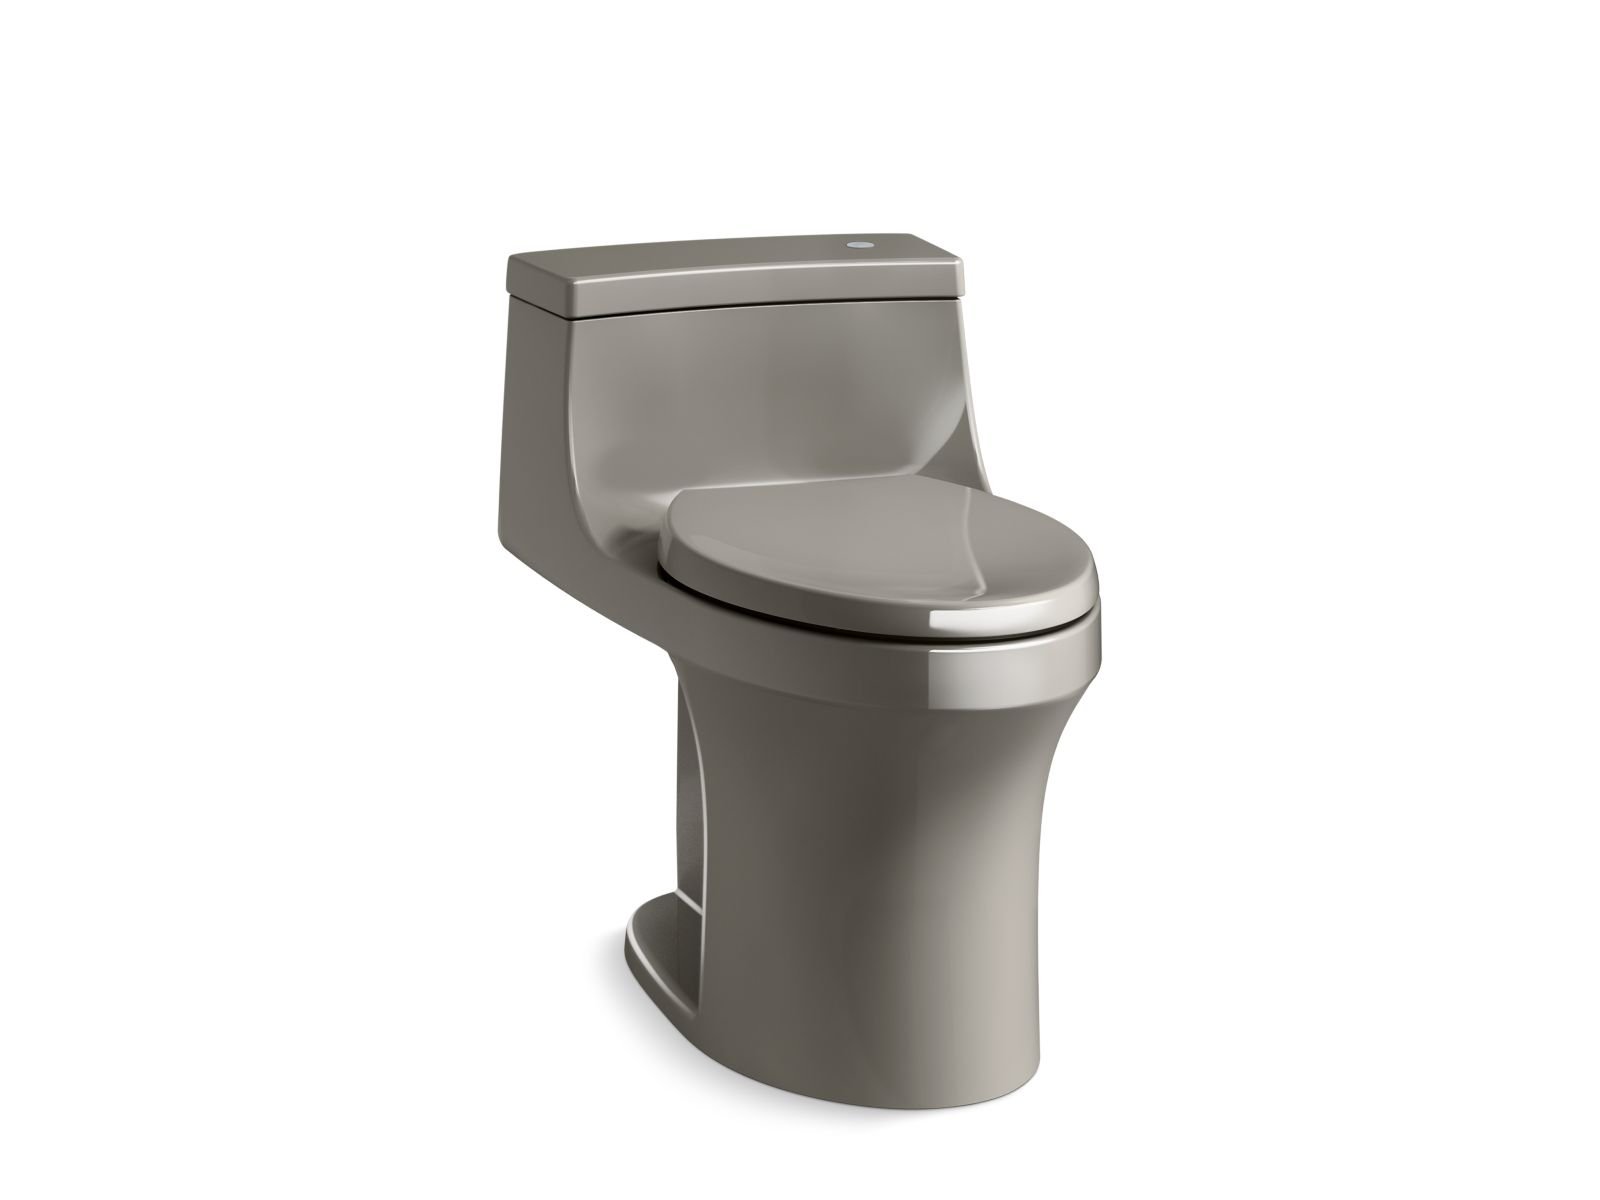 Kohler San Souci™ K-4000-K4 Touchless Comfort Height® one-piece compact elongated 1.28 gpf toilet with AquaPiston® flushing technology Cashmere